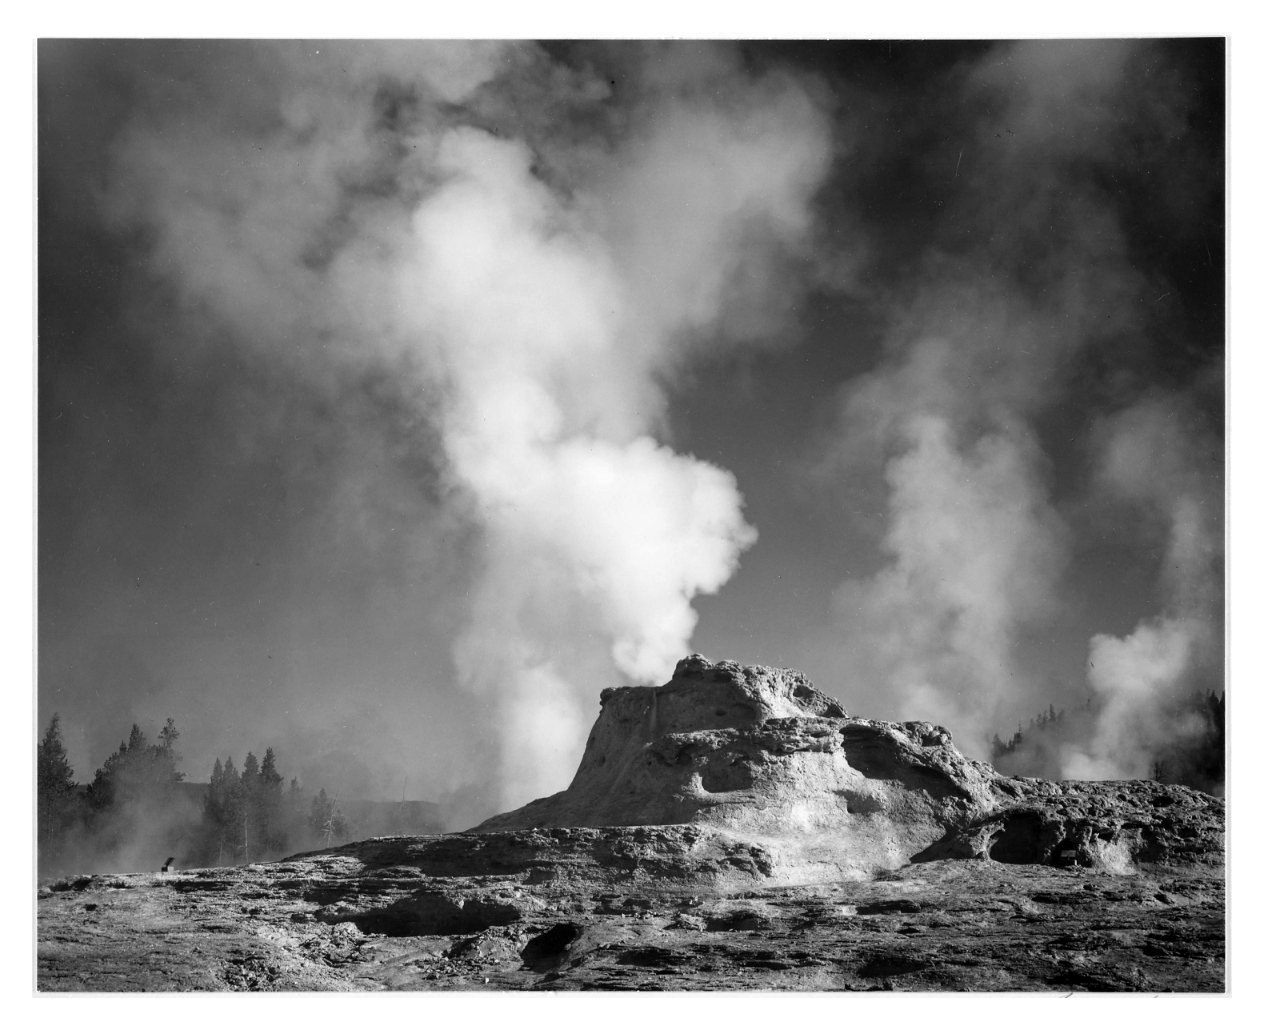 Castle Geyser Cove Yellowstone National Park